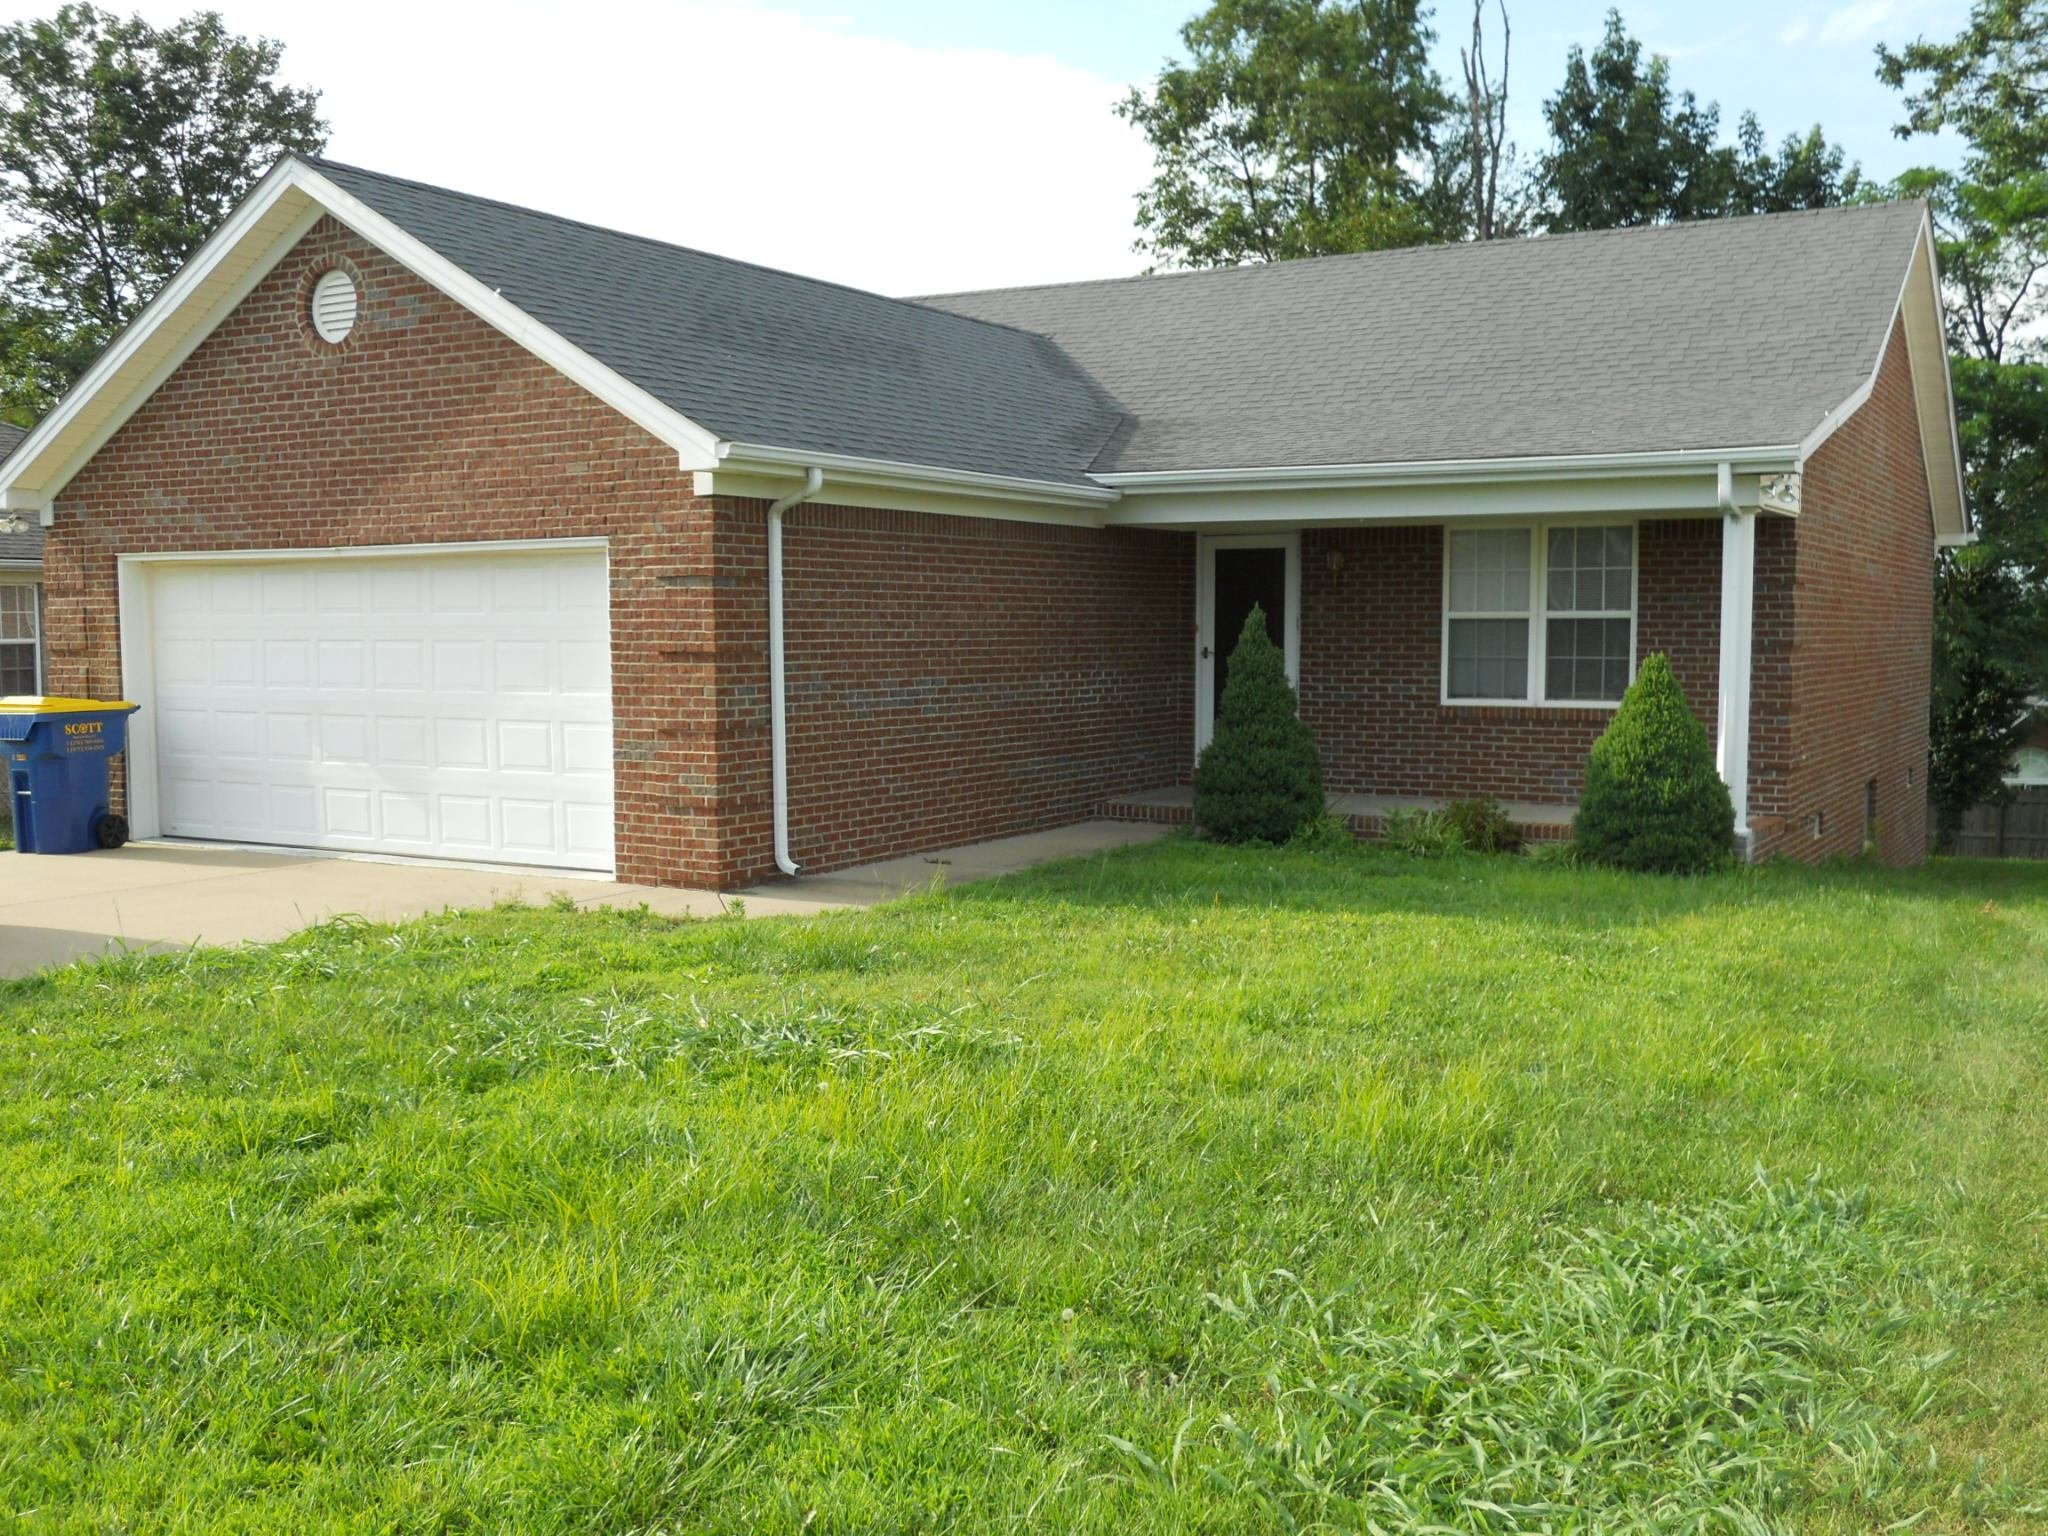 Best Bowling Green Ky Rental Houses Homes For Renthomes For Rent Excellent Rental Properties In With Pictures